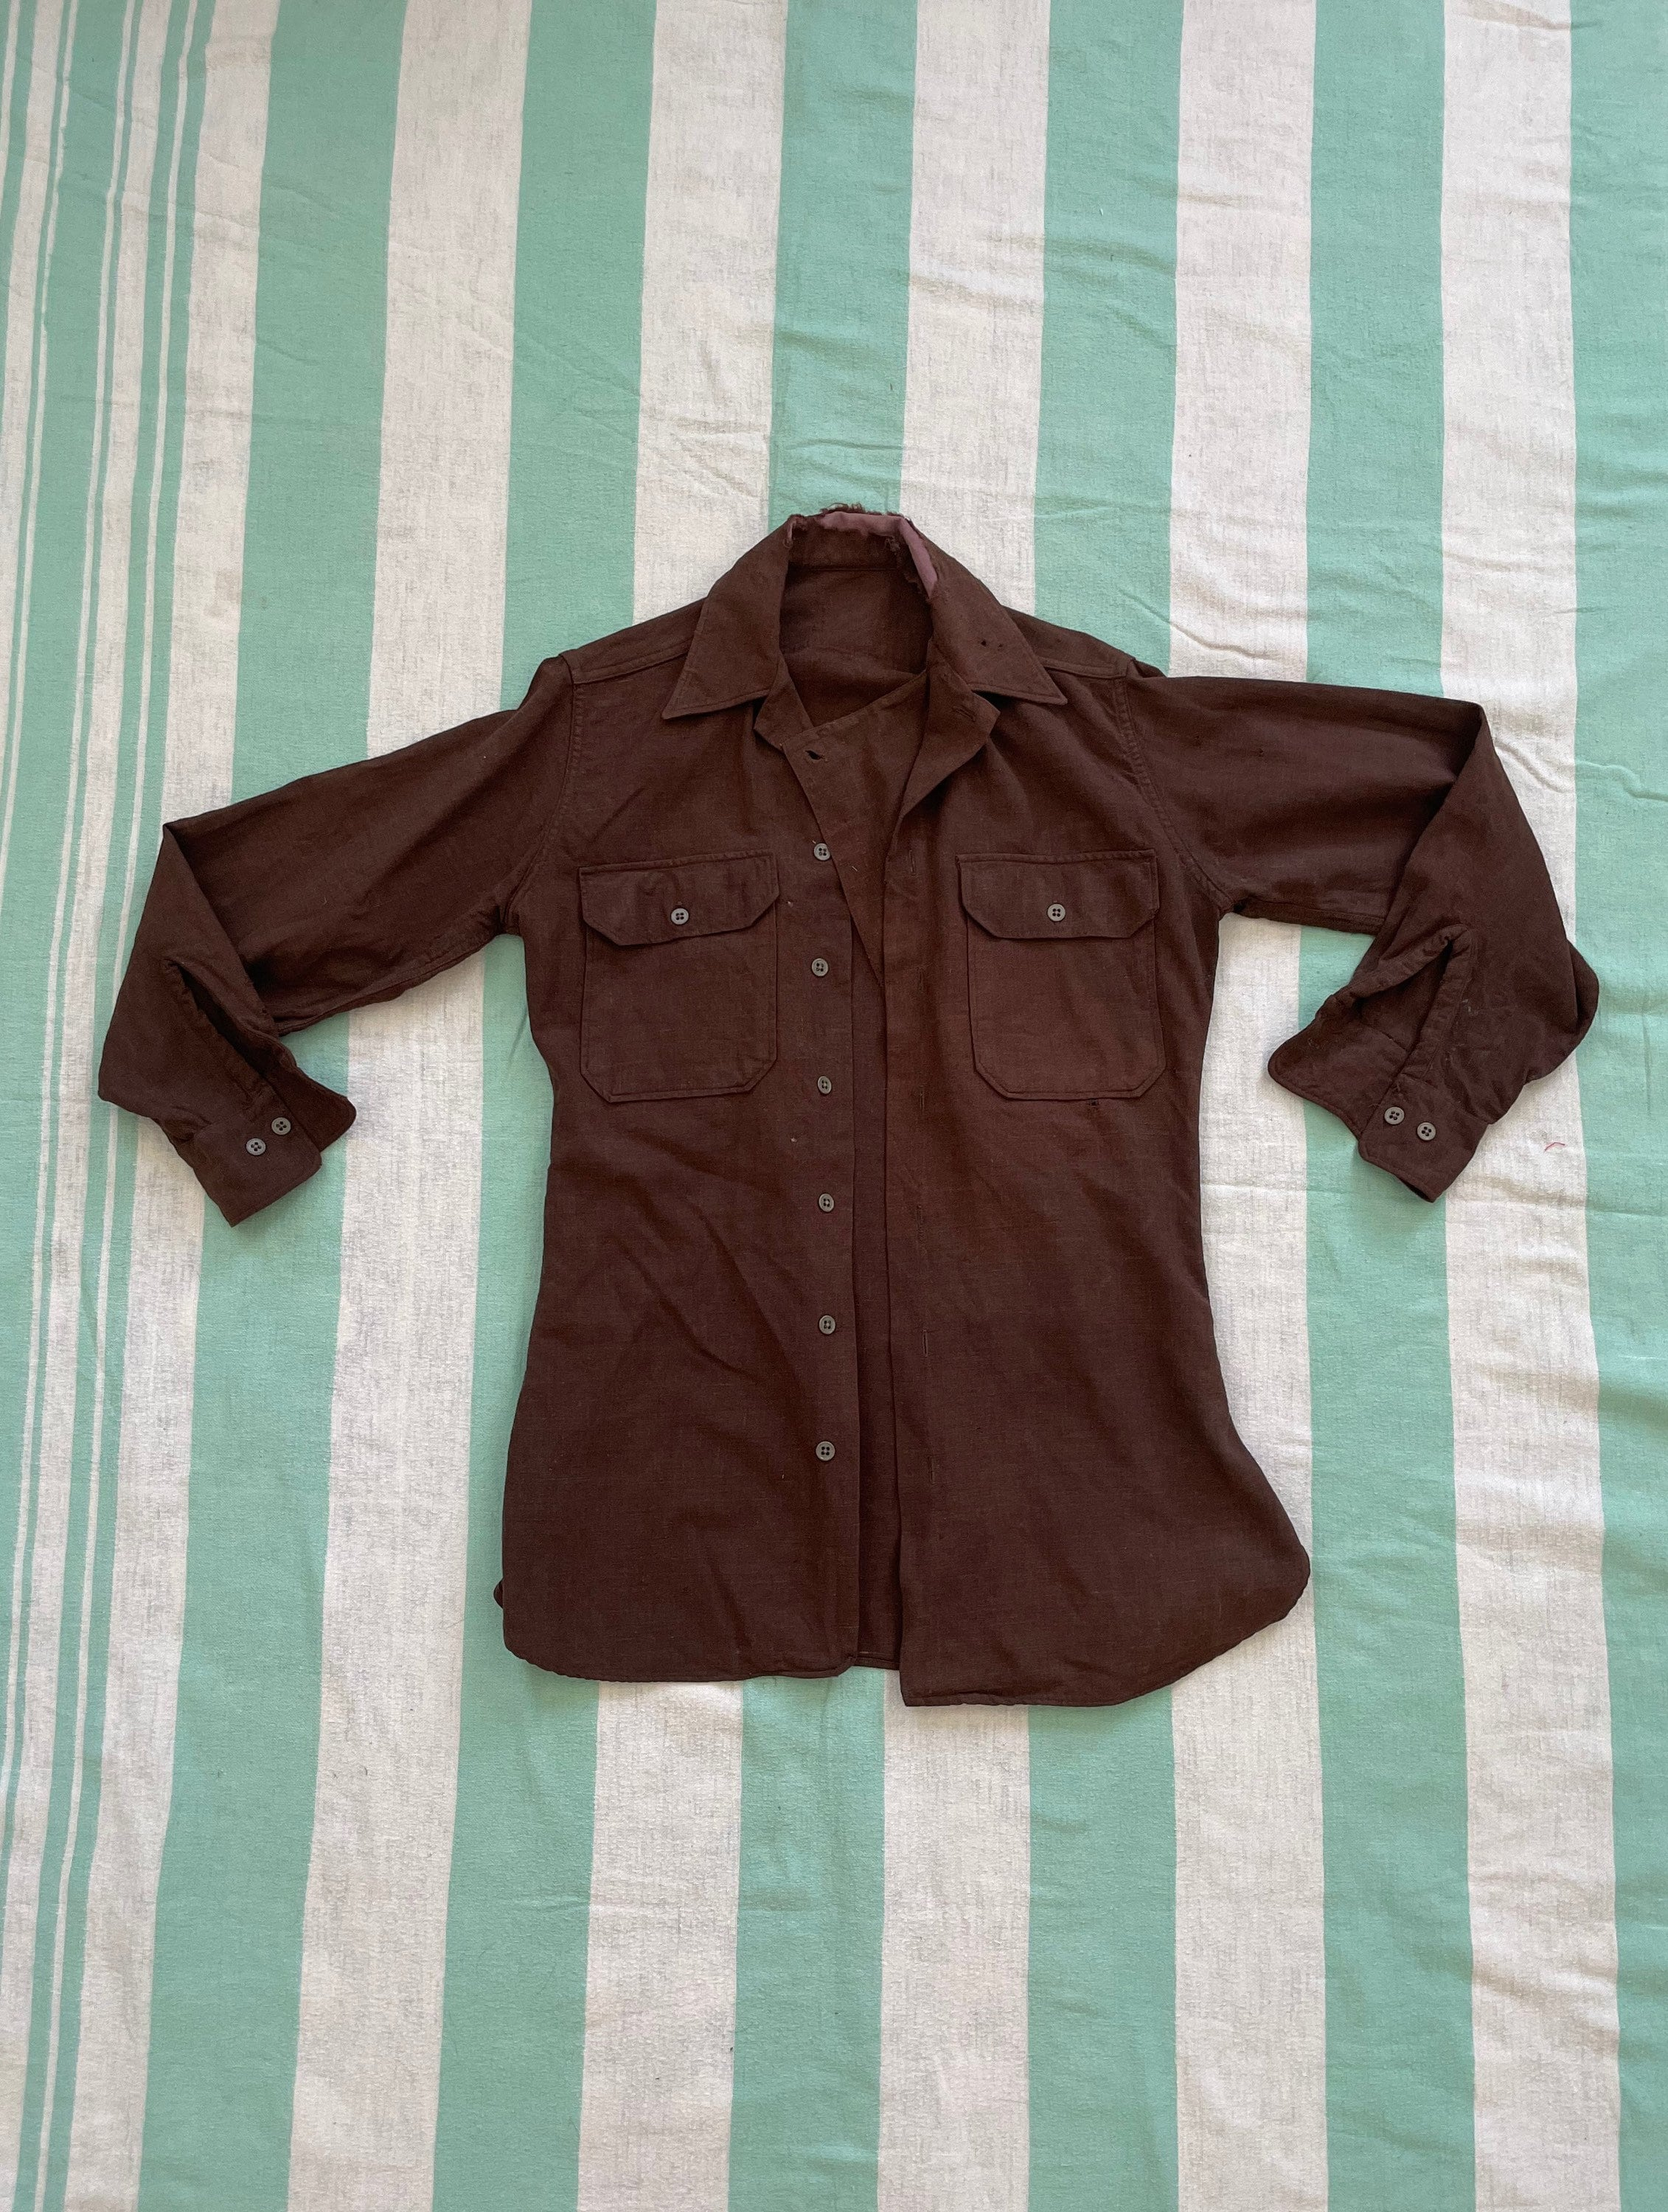 1940s Men's Shirts, Sweaters, Vests Vintage Overdyed 1940S-50S Wool Military Field Shirt With Gas Flap $0.00 AT vintagedancer.com